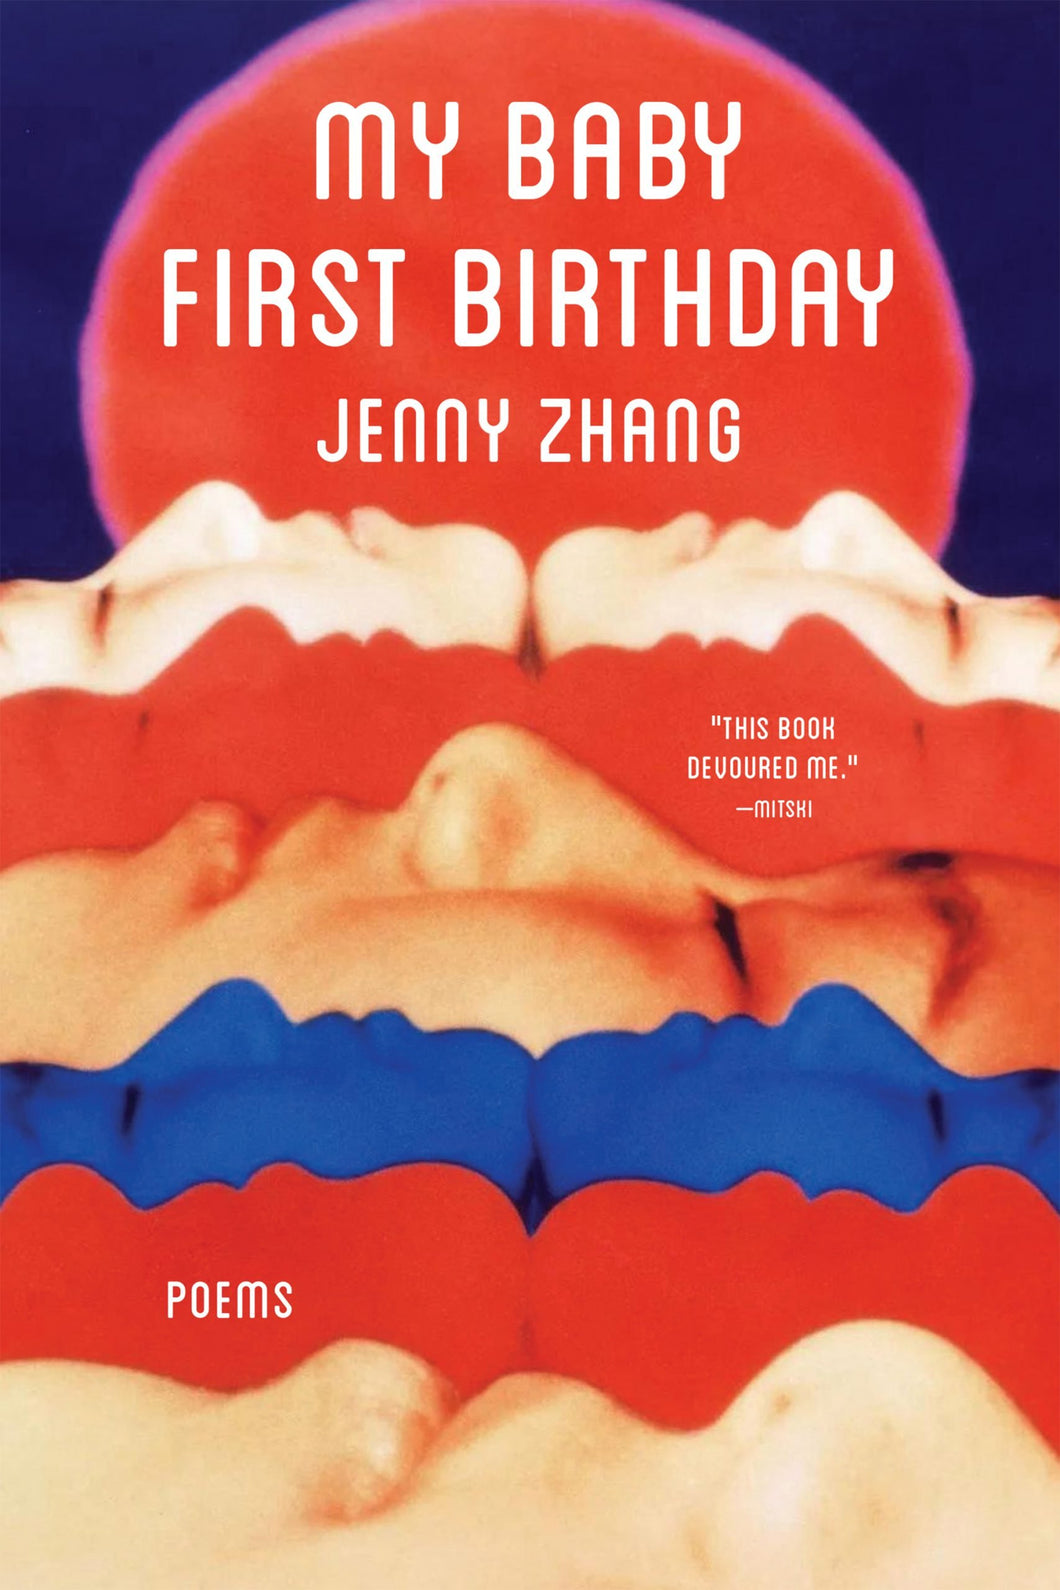 My Baby First Birthday by Jenny Zhang